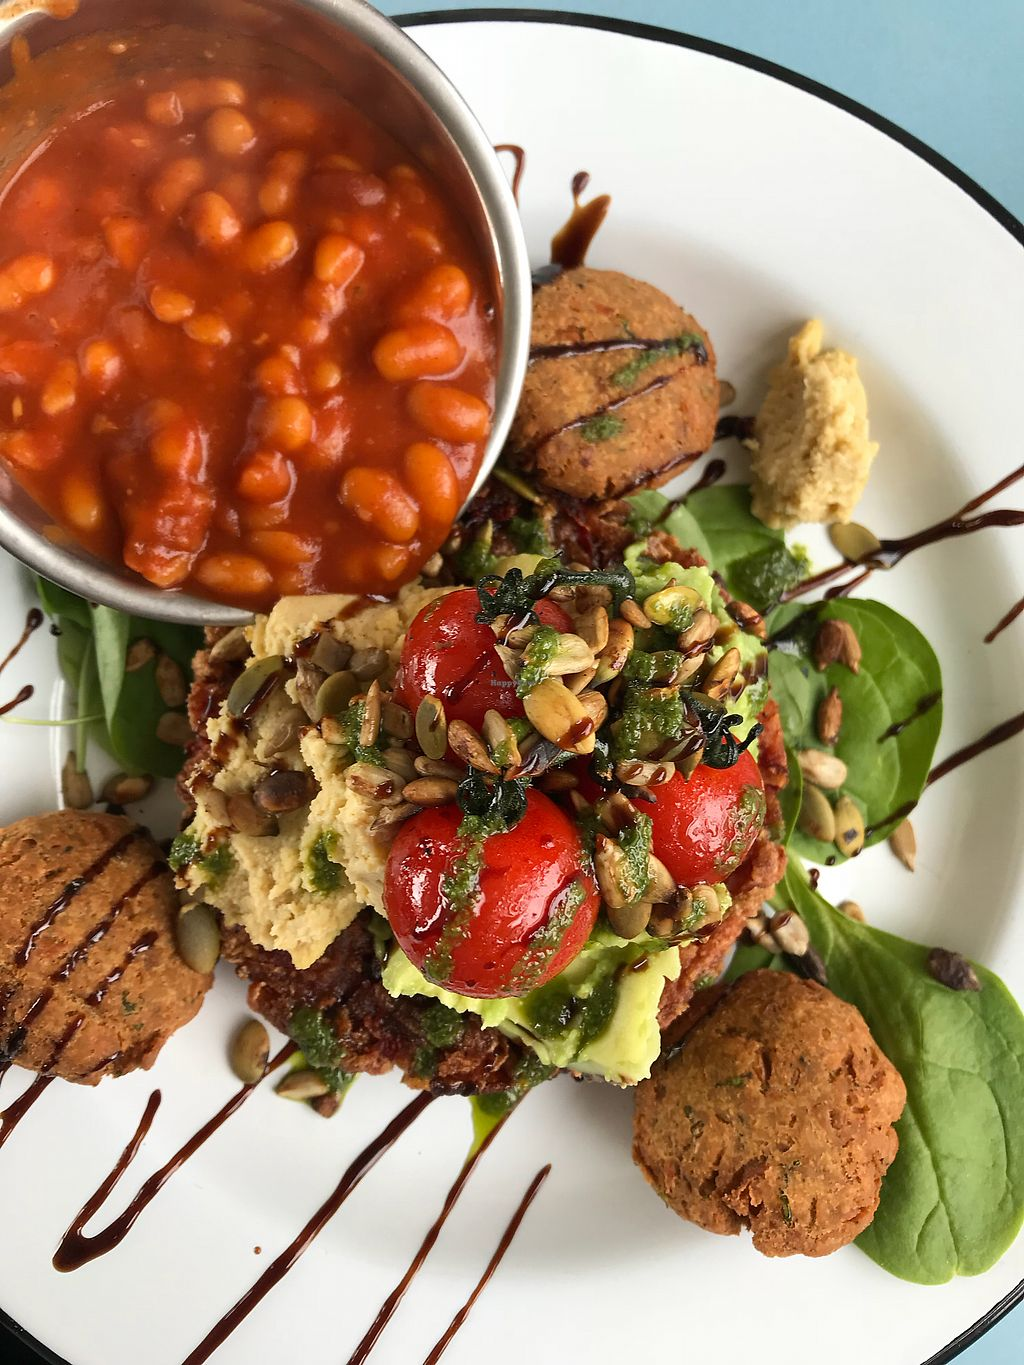 """Photo of The Bus Cafe  by <a href=""""/members/profile/Love%20to%20munch"""">Love to munch</a> <br/>Breakfast falafel stack  <br/> February 8, 2018  - <a href='/contact/abuse/image/103688/356555'>Report</a>"""